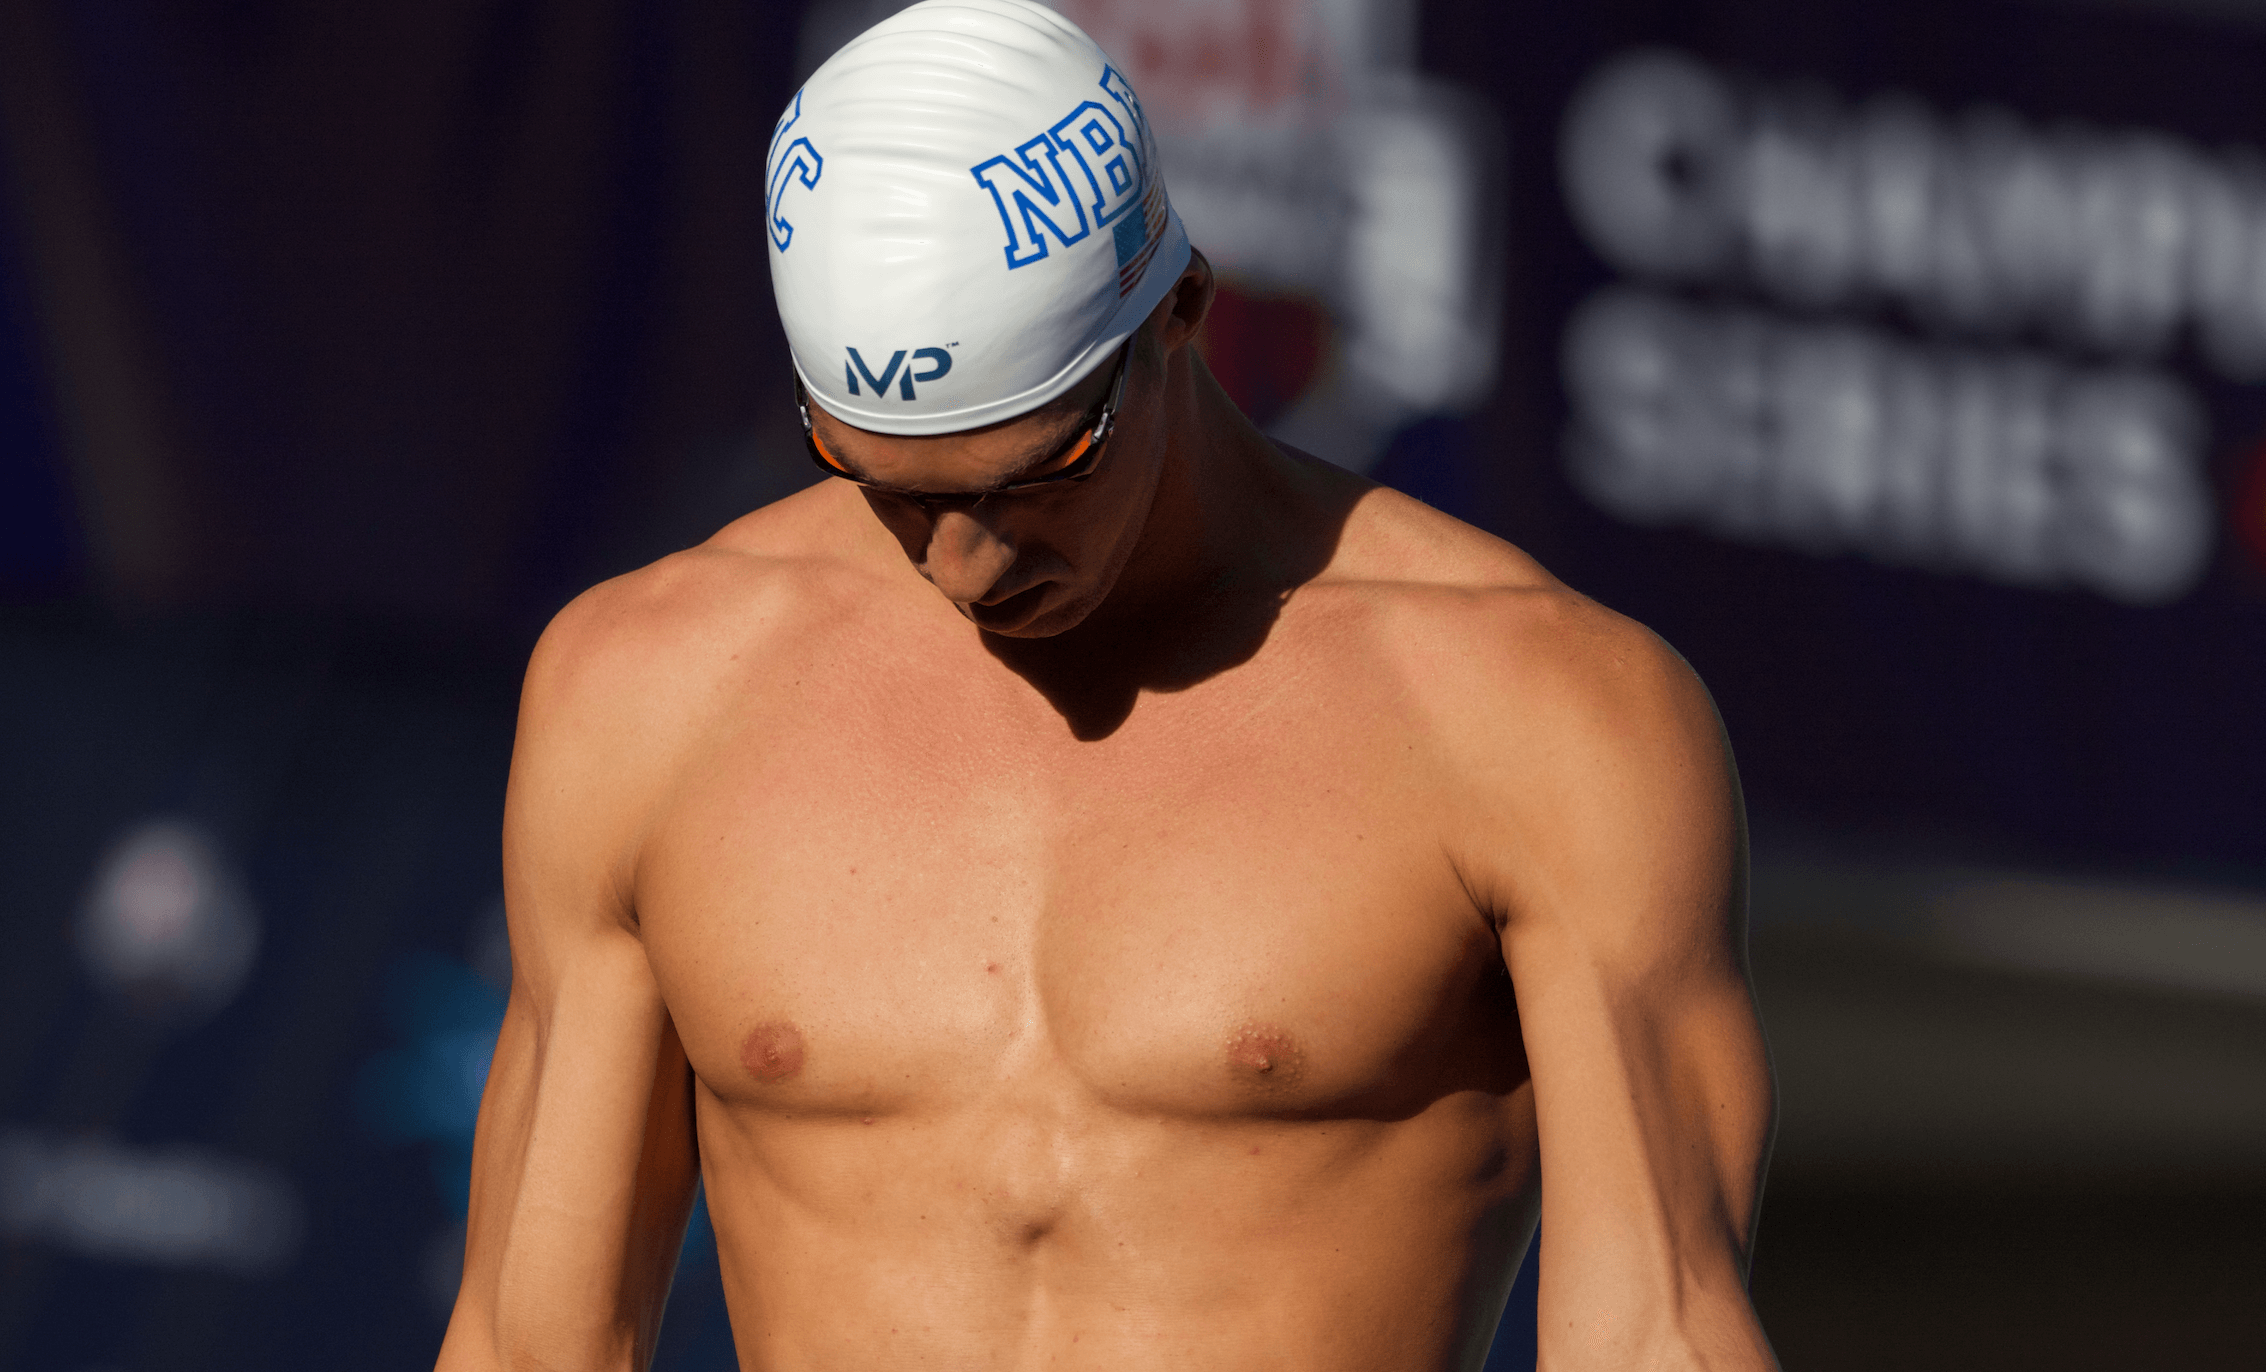 8 Michael Phelps Swimming Quotes To Get You Fired Up